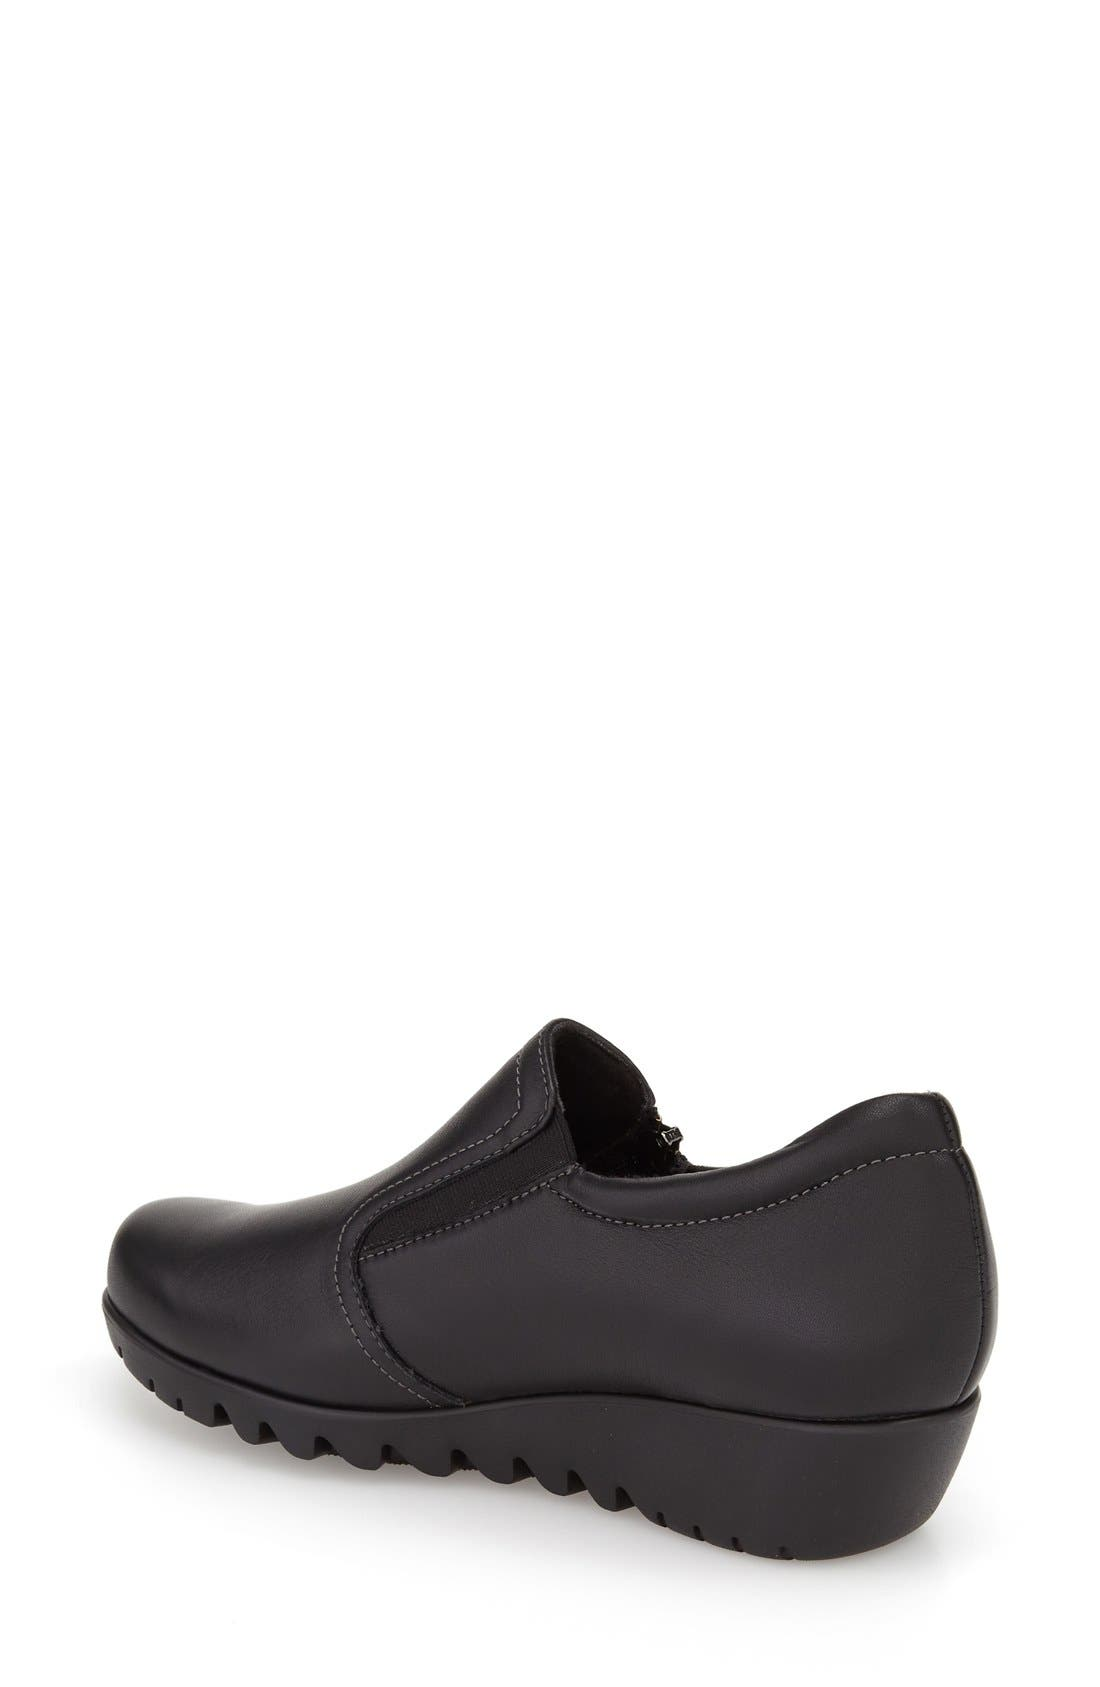 Napoli Zip Bootie,                             Alternate thumbnail 2, color,                             BLACK LEATHER